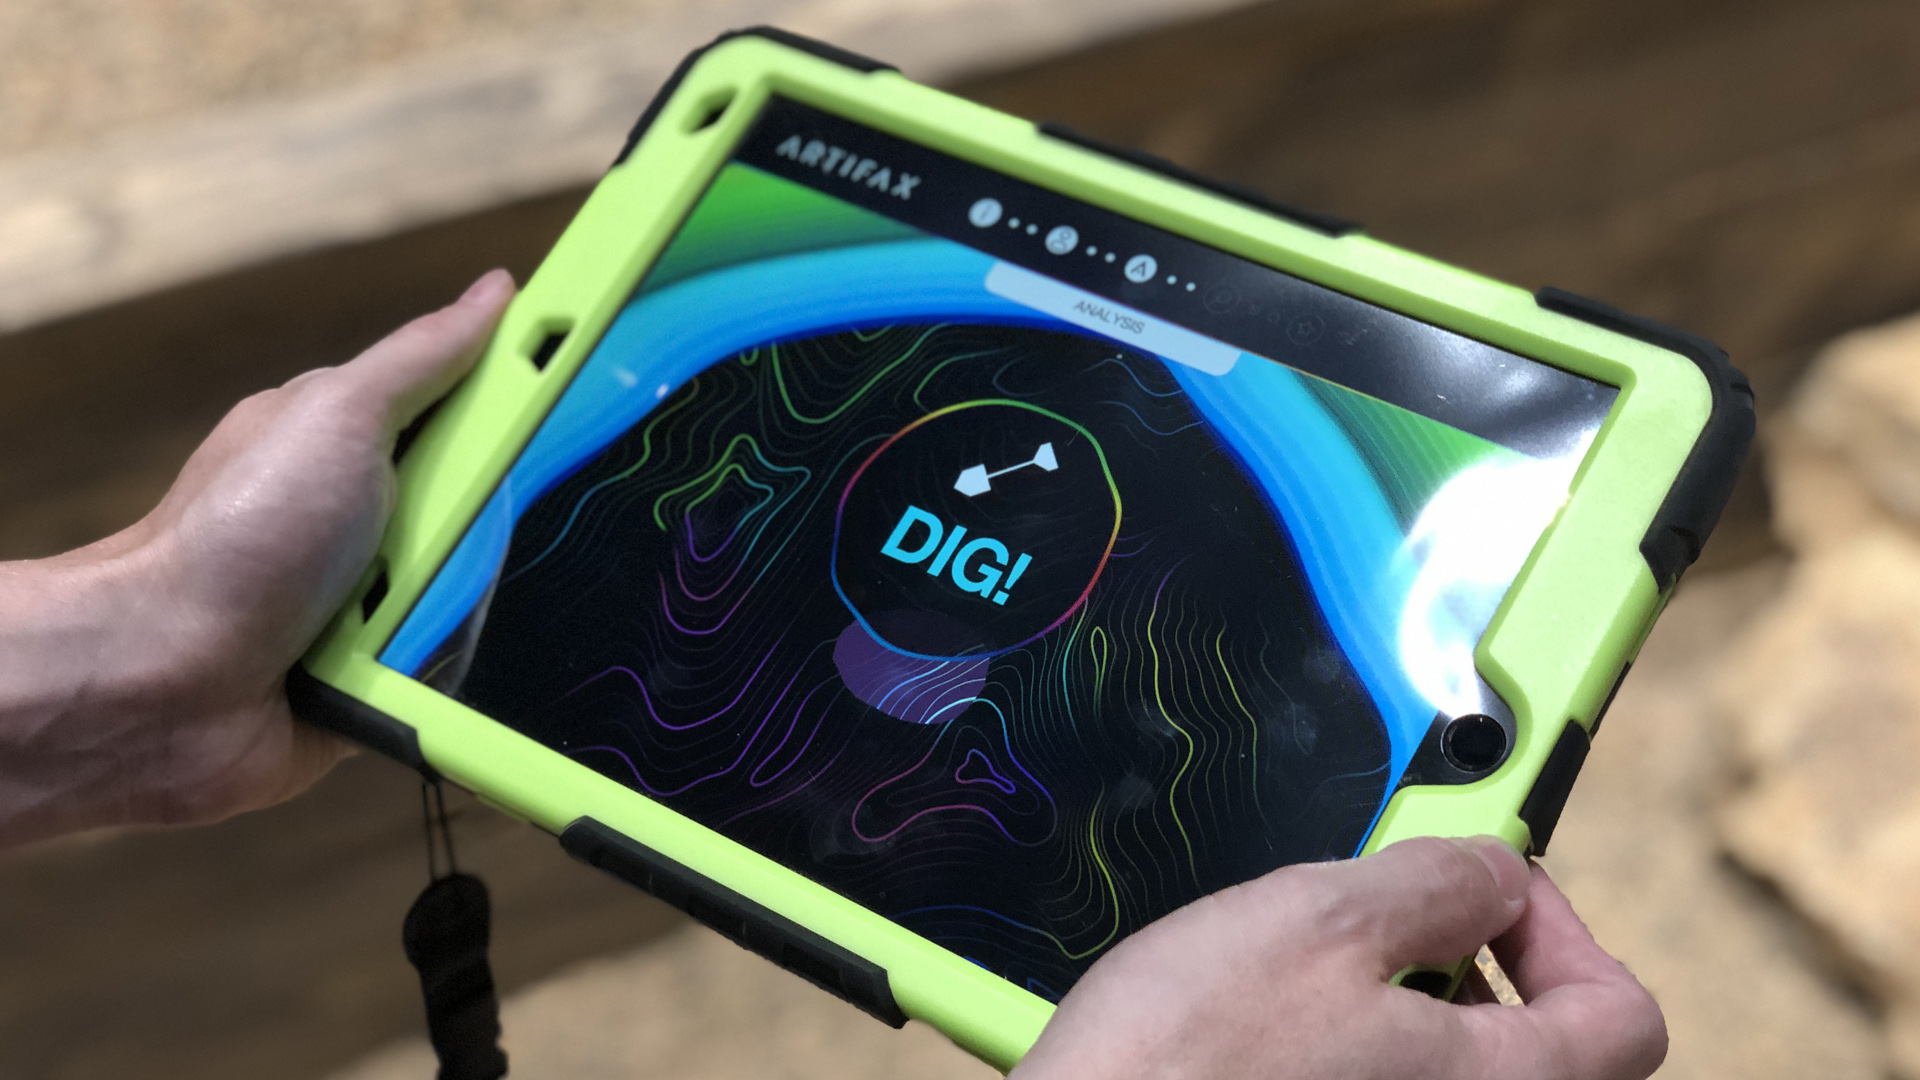 fossil dig interactive